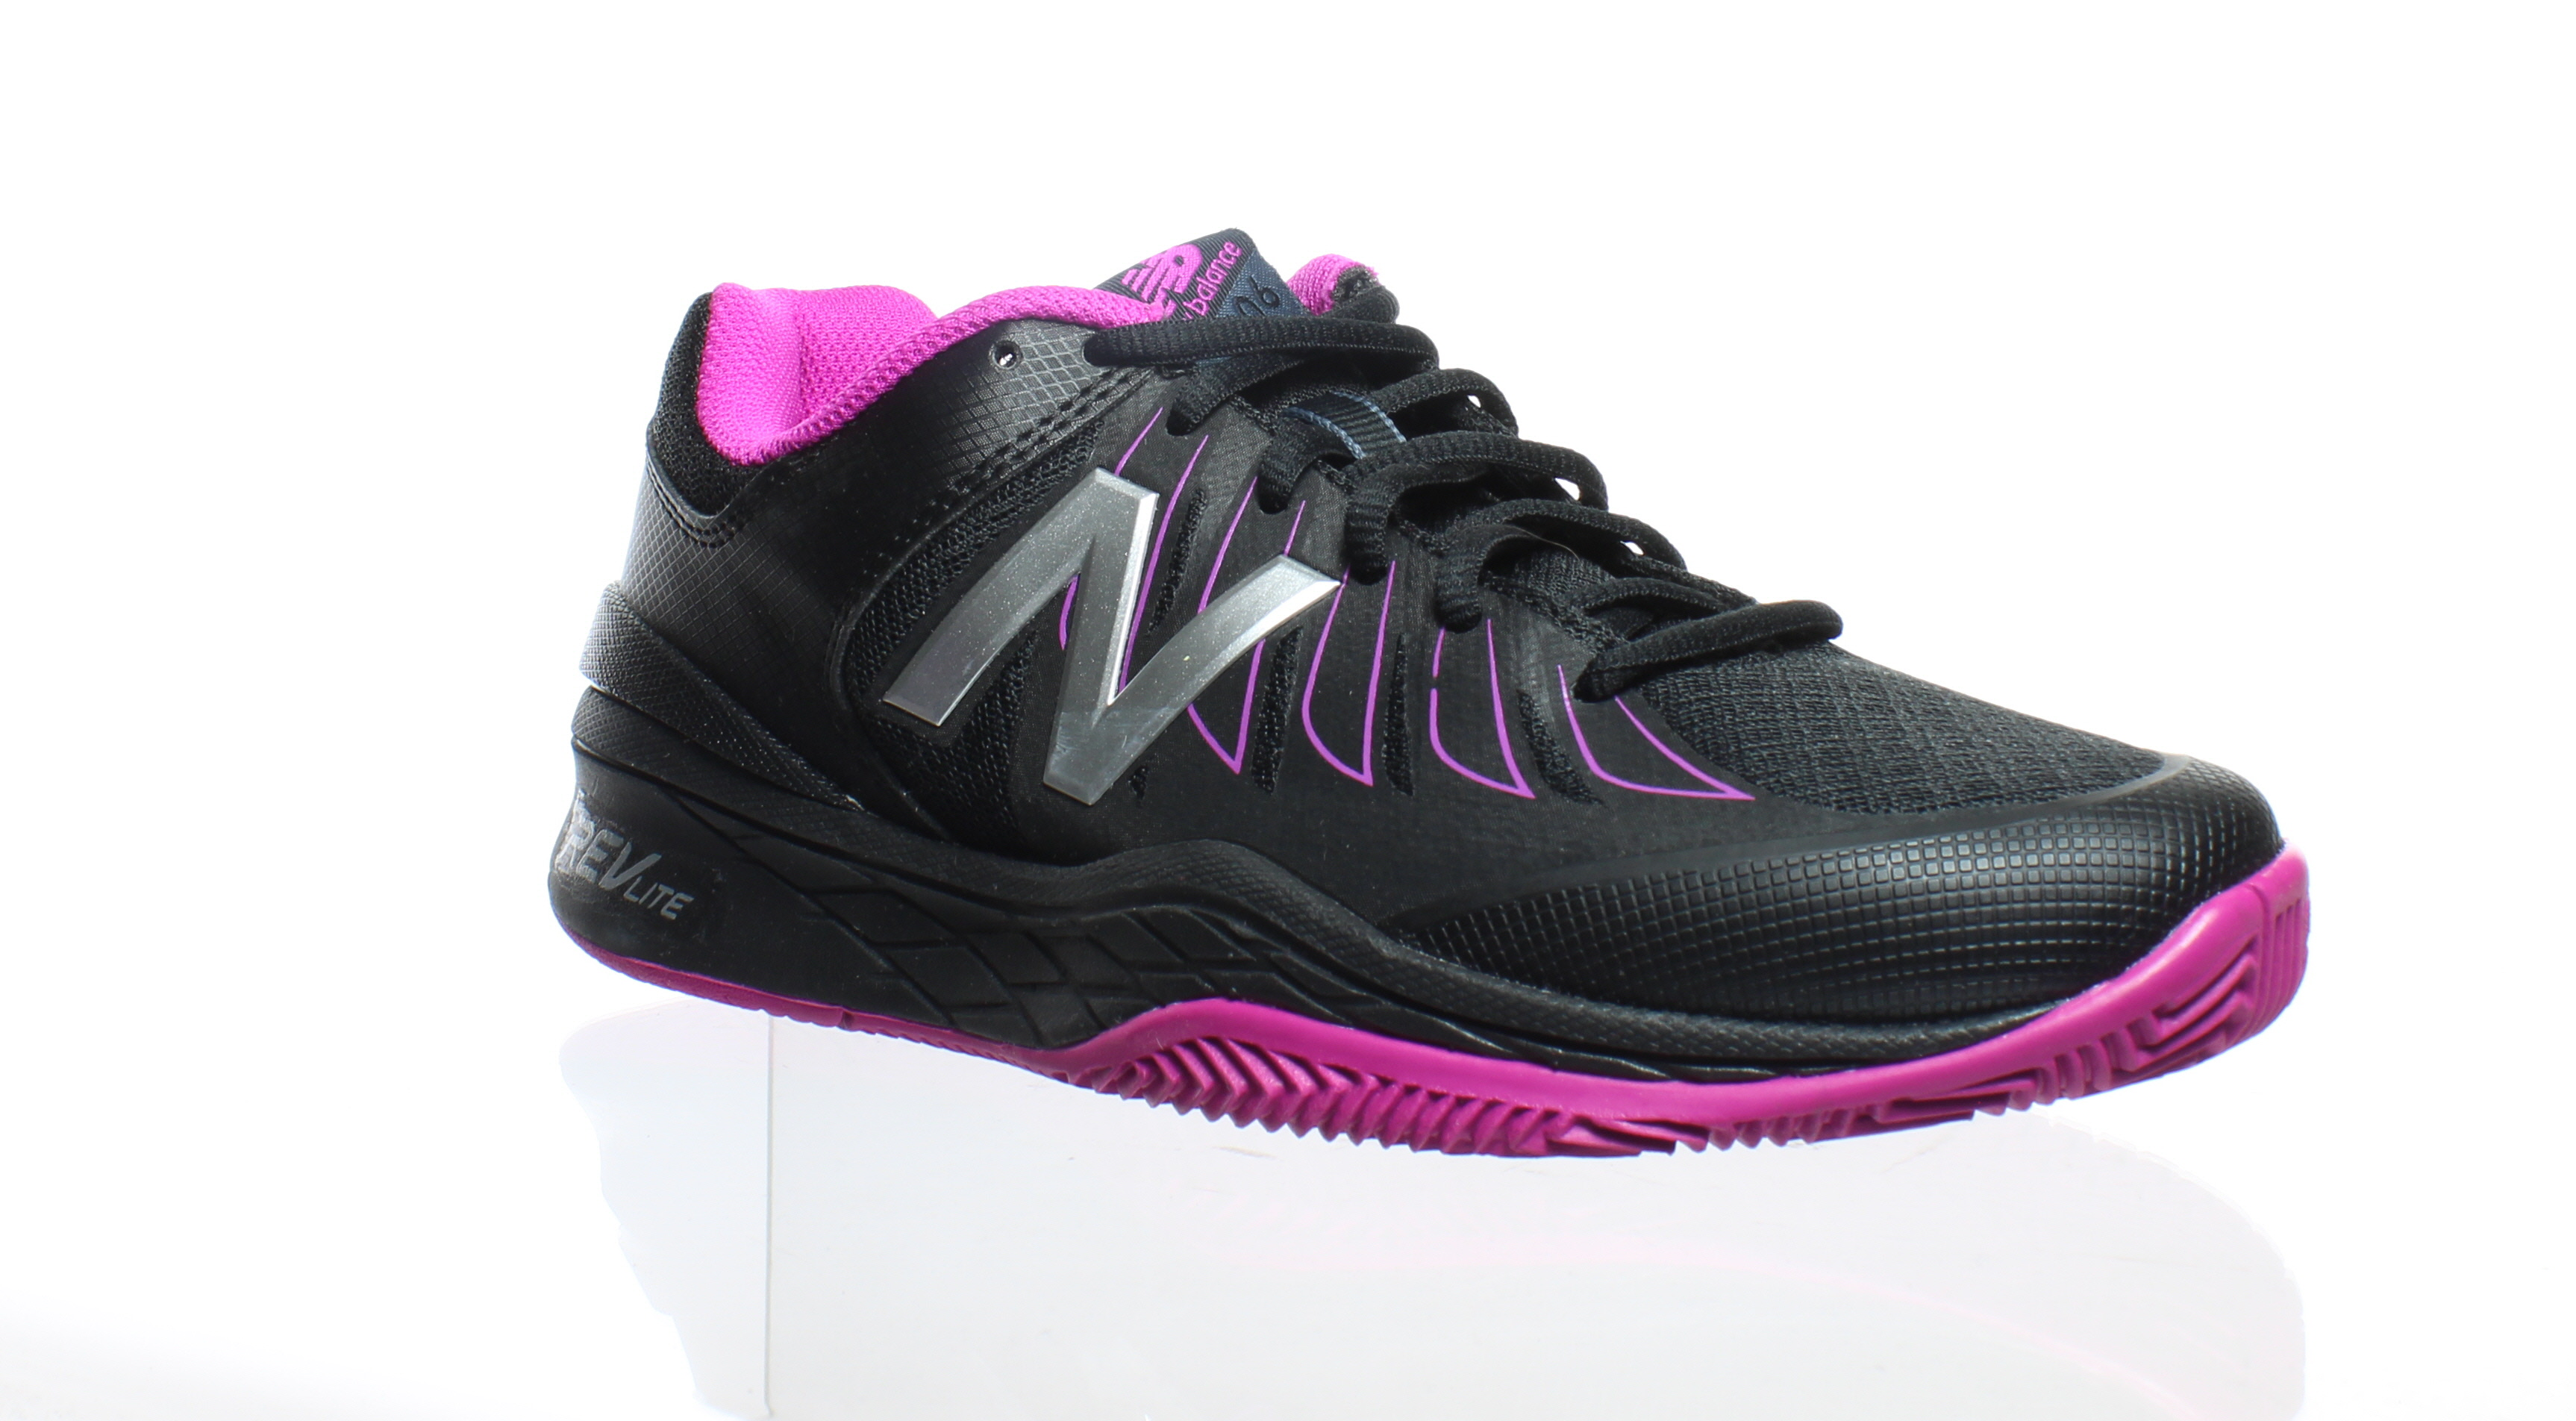 e24c7a948ee New Balance Womens Wc1006wr Black Pink Tennis Shoes Size 6.5 (AA